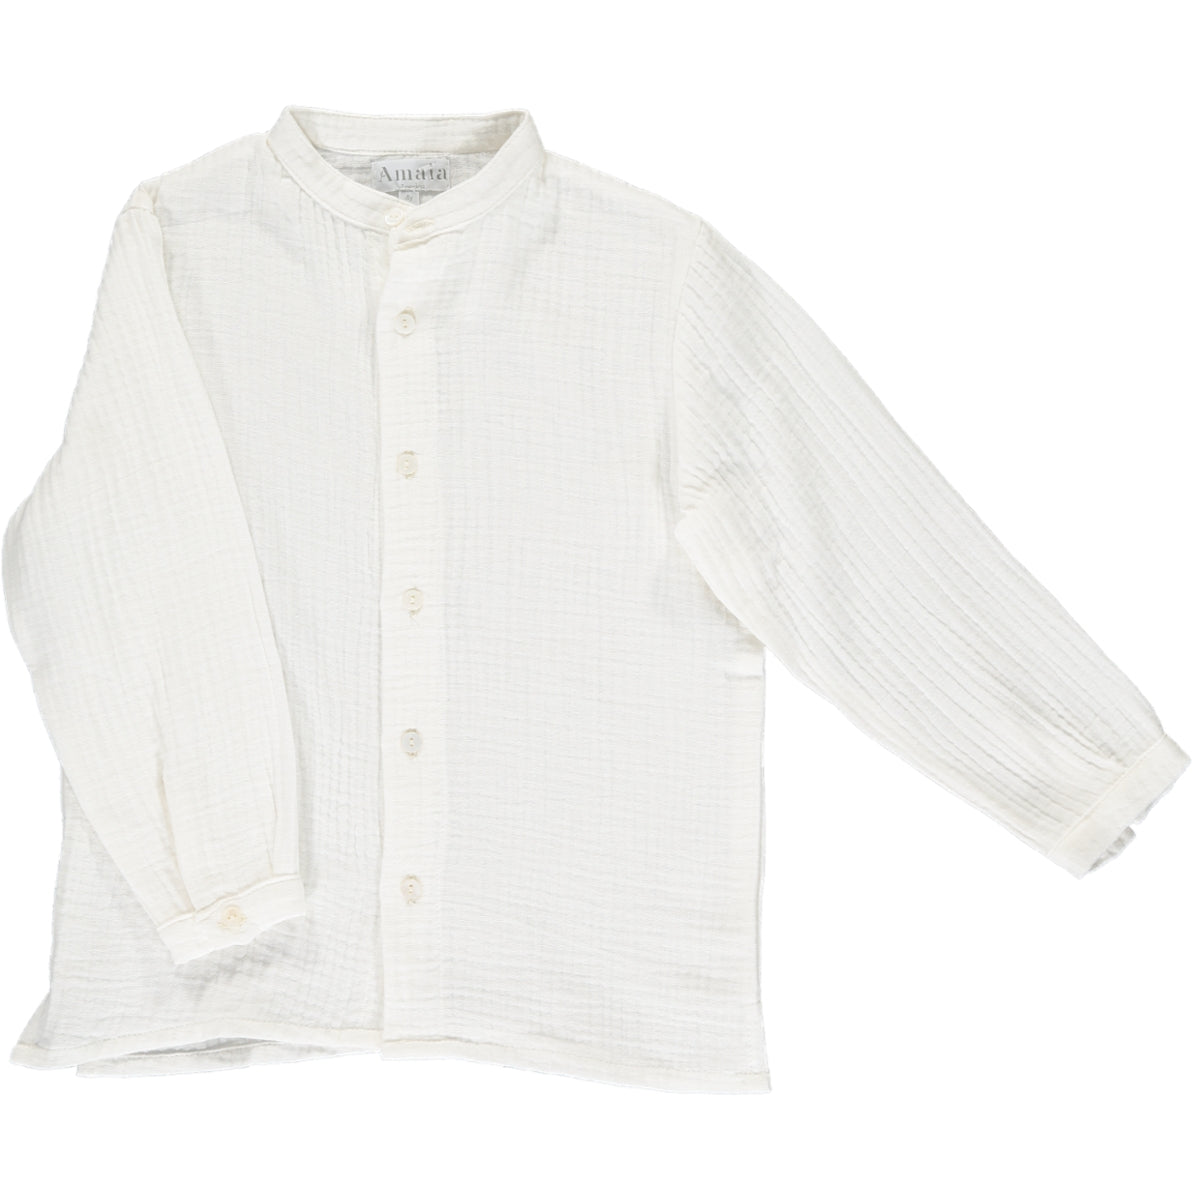 Victor Shirt Off-White